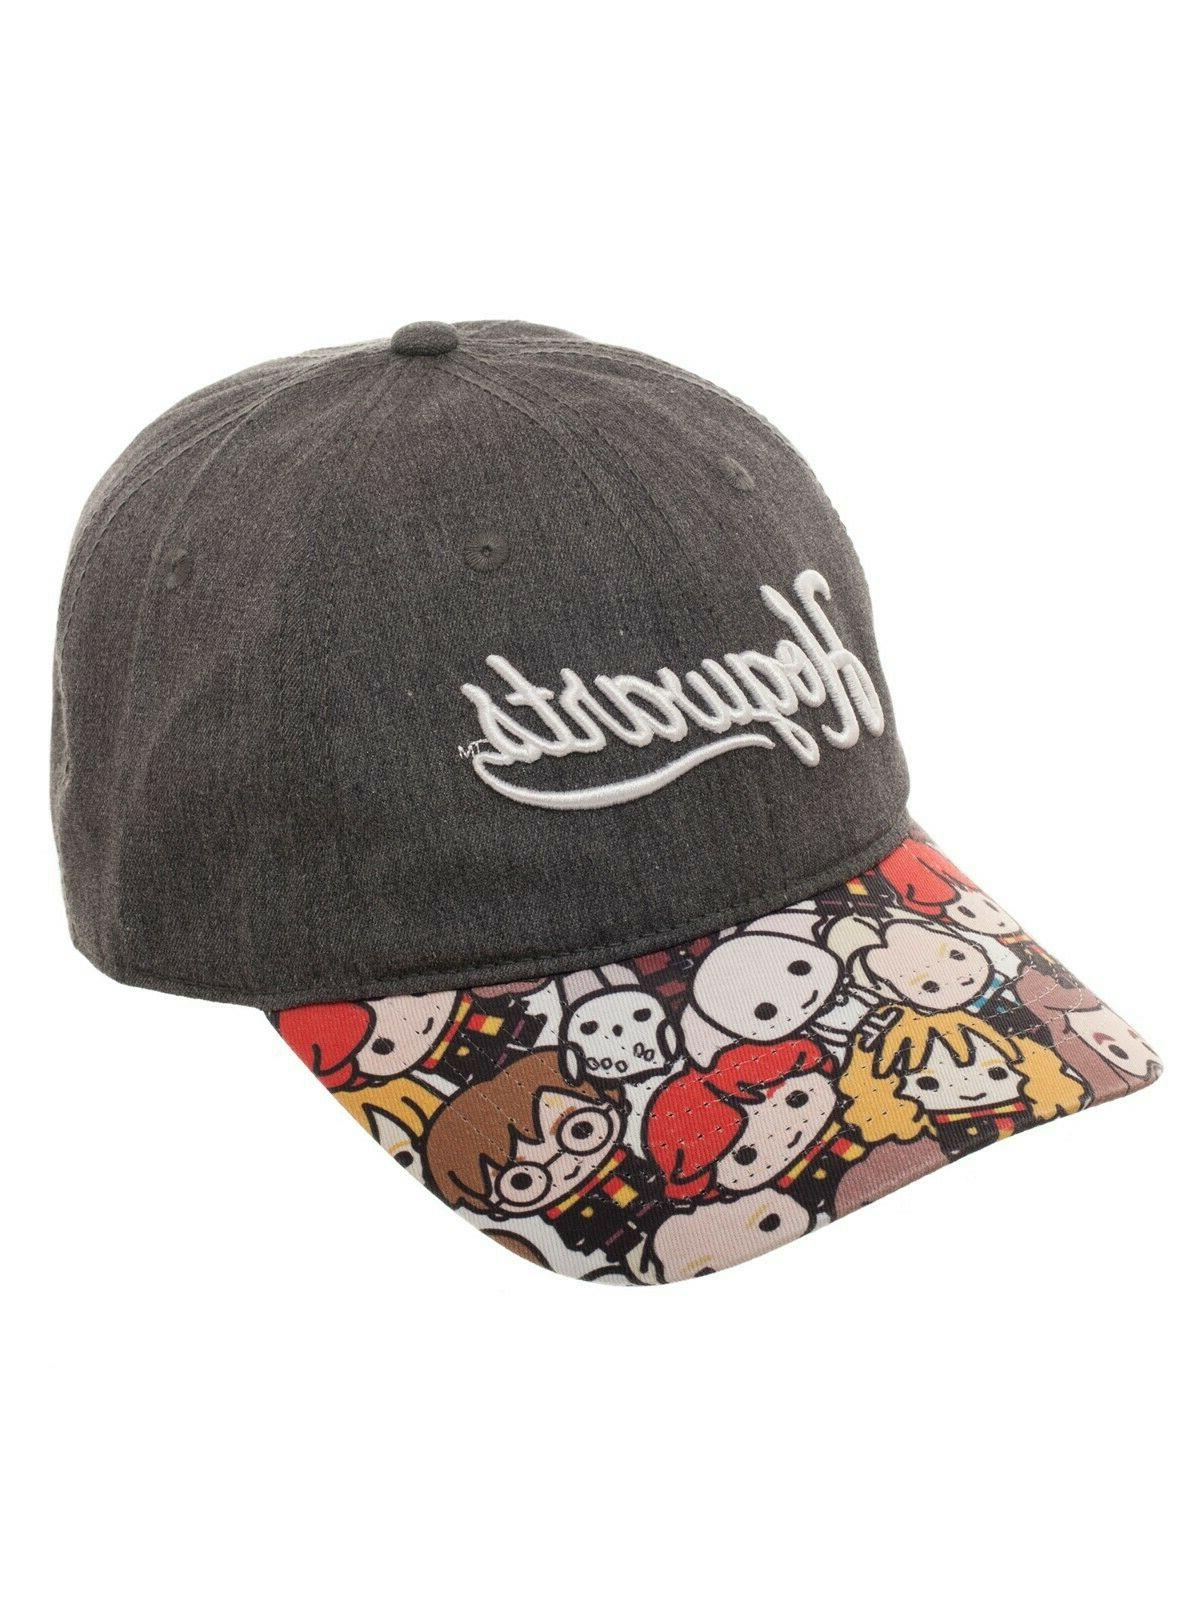 Bioworld Chibi Chambray Adjustable Cap Unisex